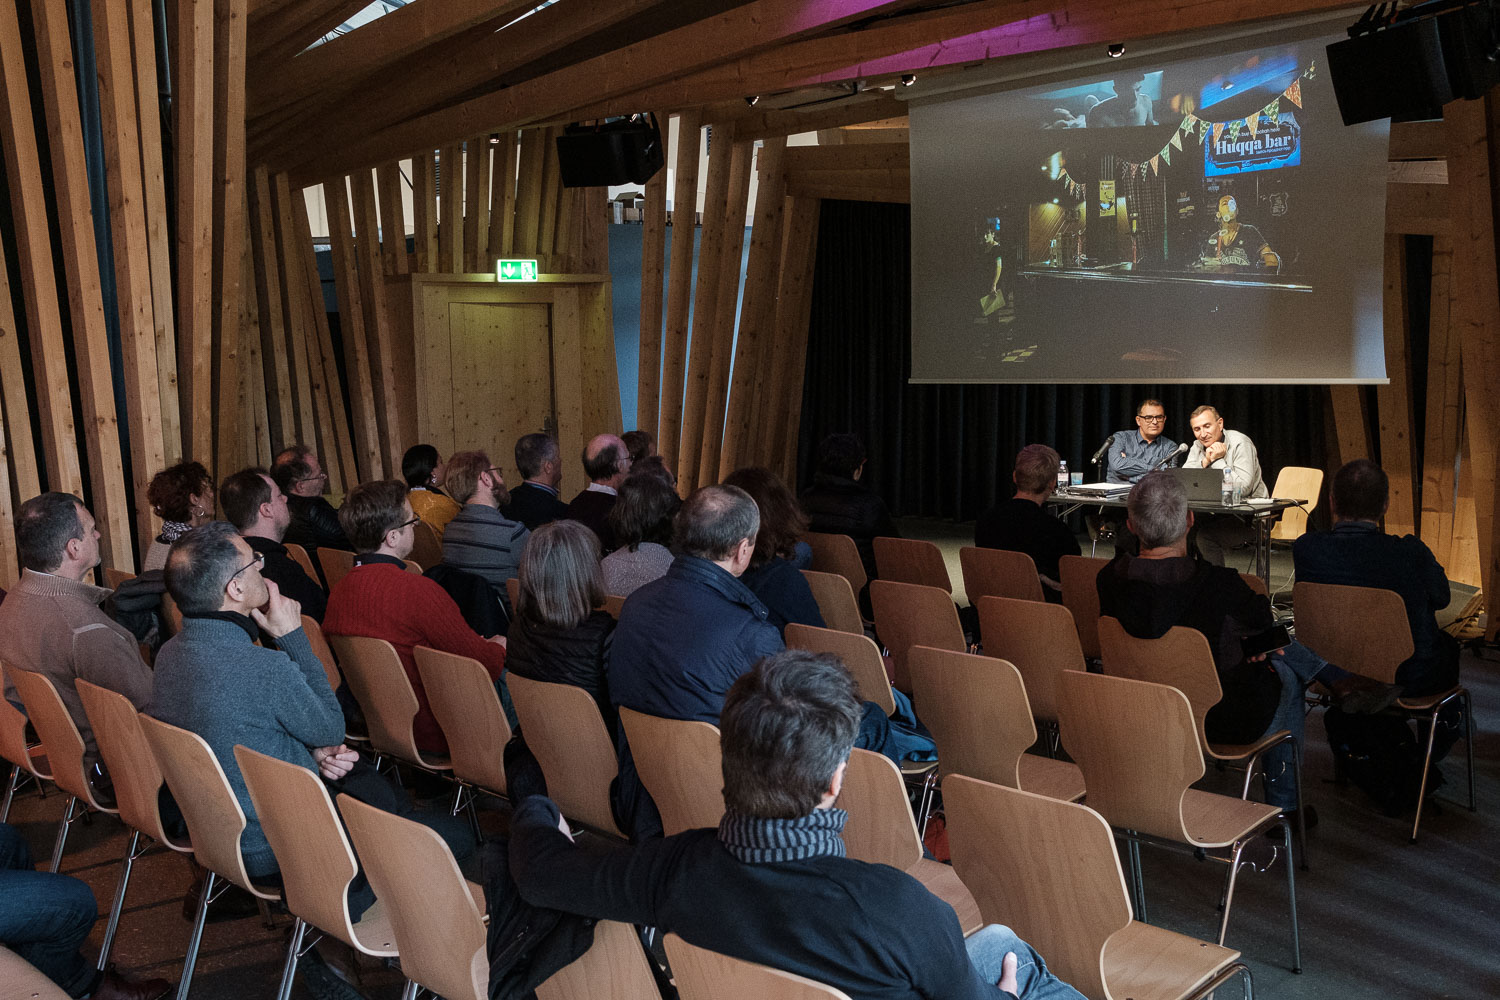 Luxembourg Street Photography Festival 2019 at Rotondes - LSPF 2019 - Conference with Pierre Gély-Fort